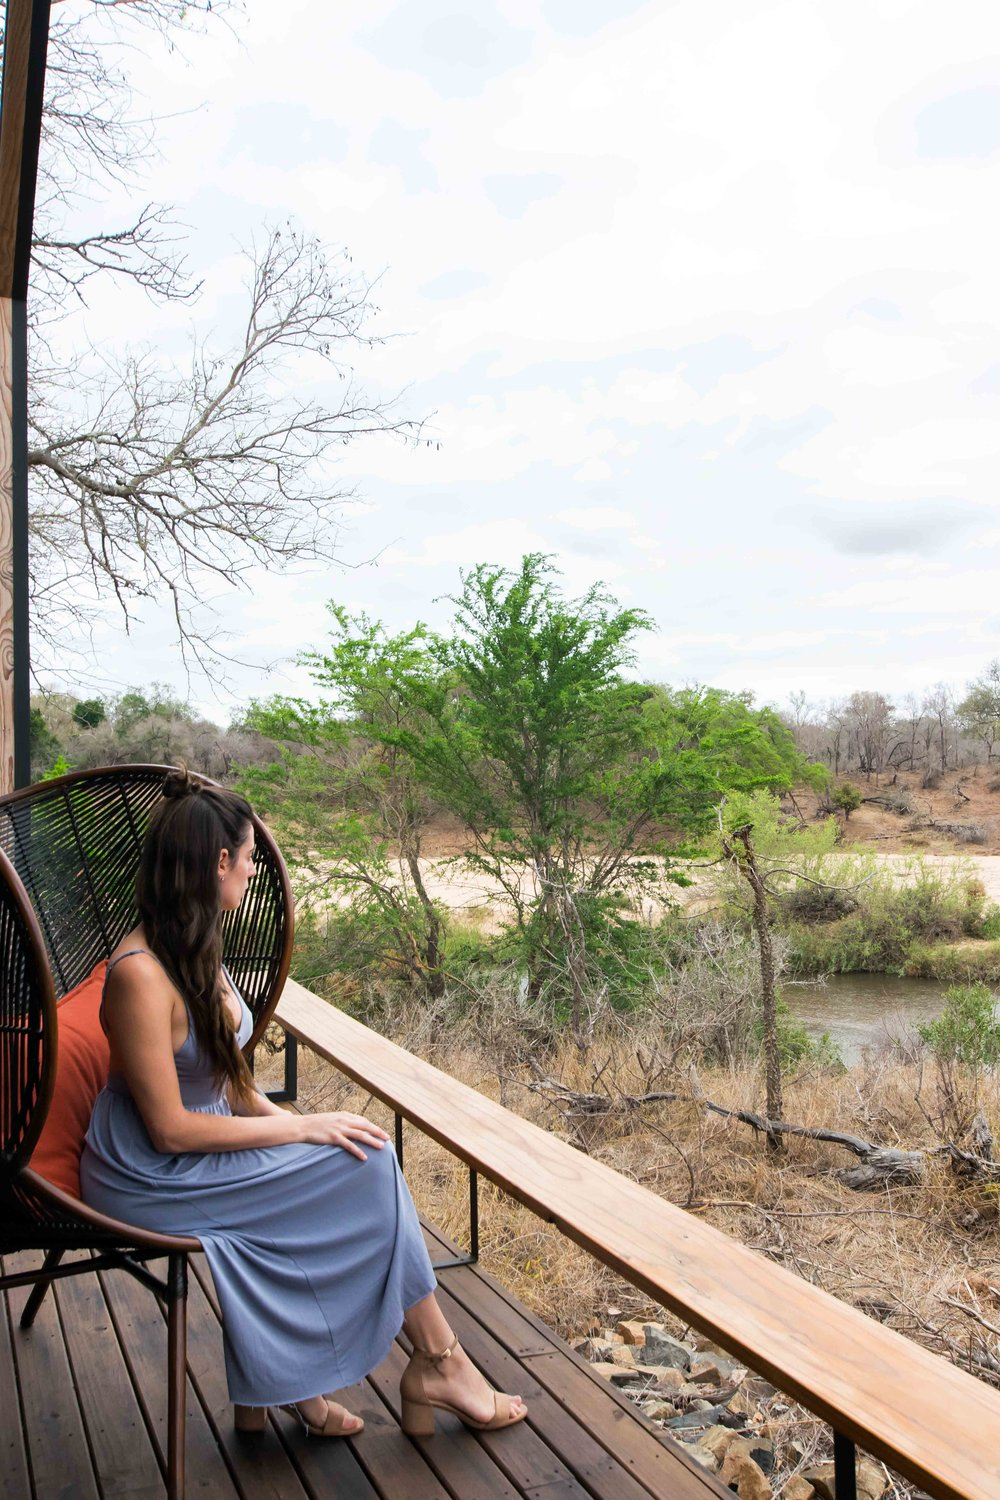 How to book a luxury safari lodge in South Africa